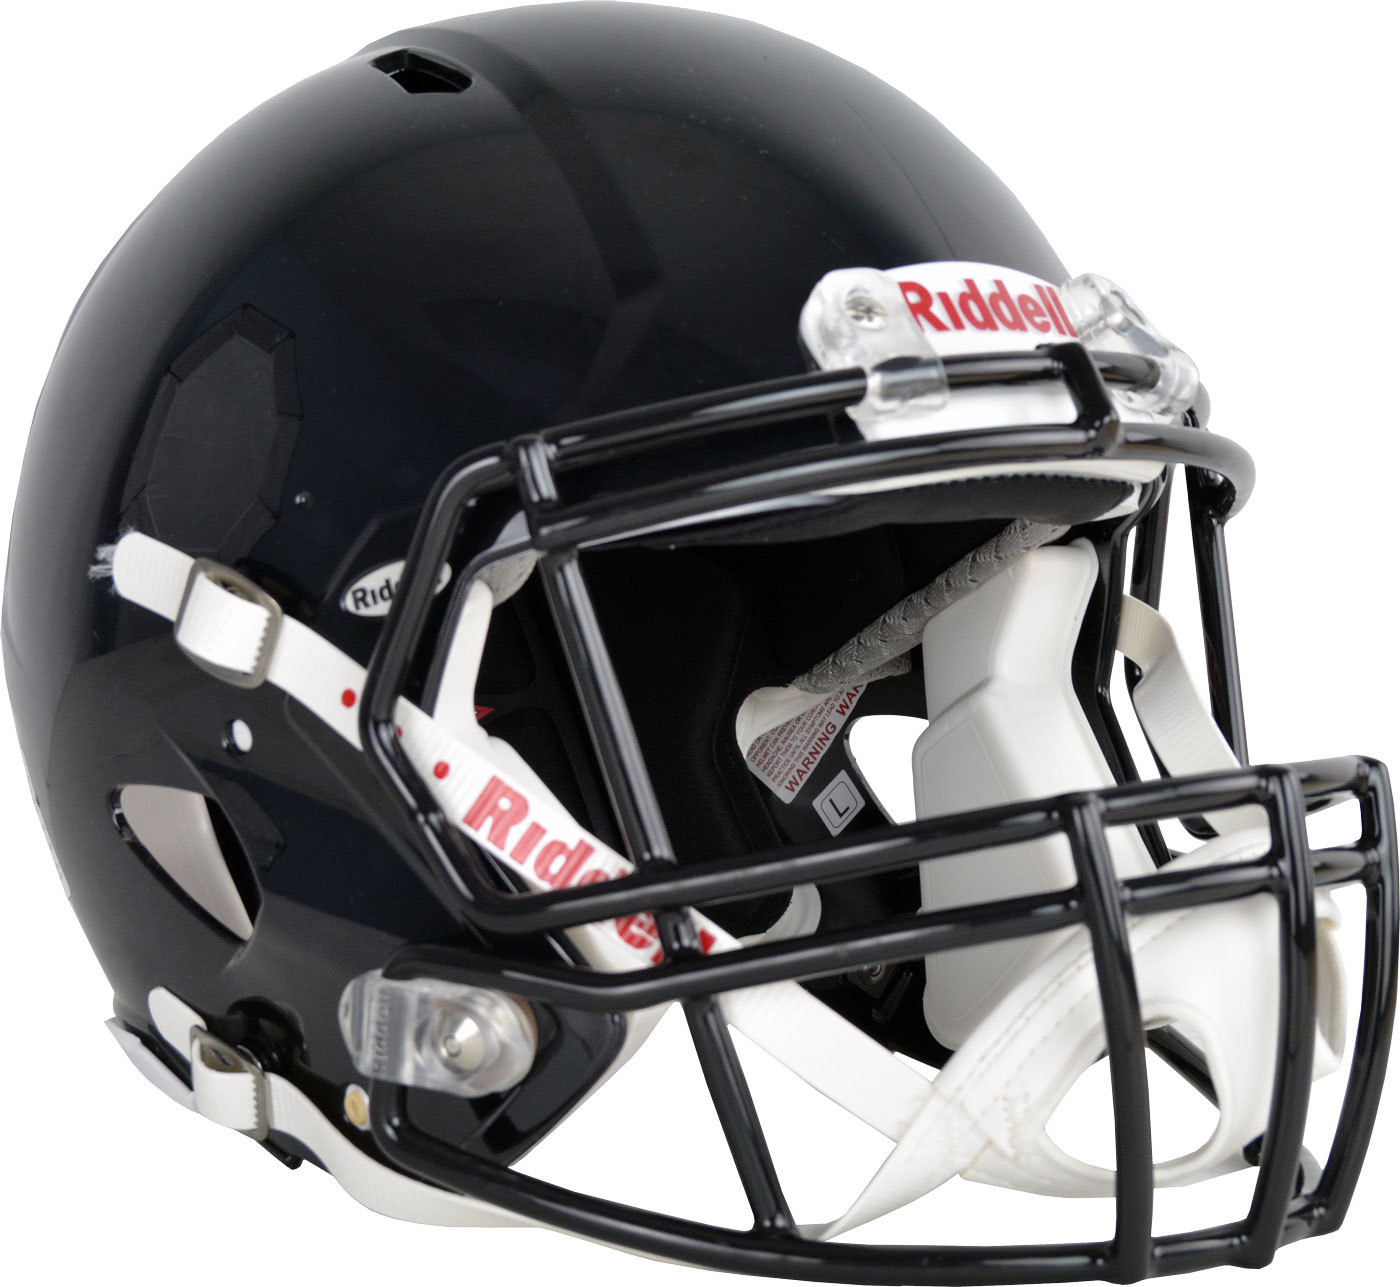 Riddell Speed American Football Helmets - Forelle Teamsports - American  Football, Baseball, Softball Equipment Specialist